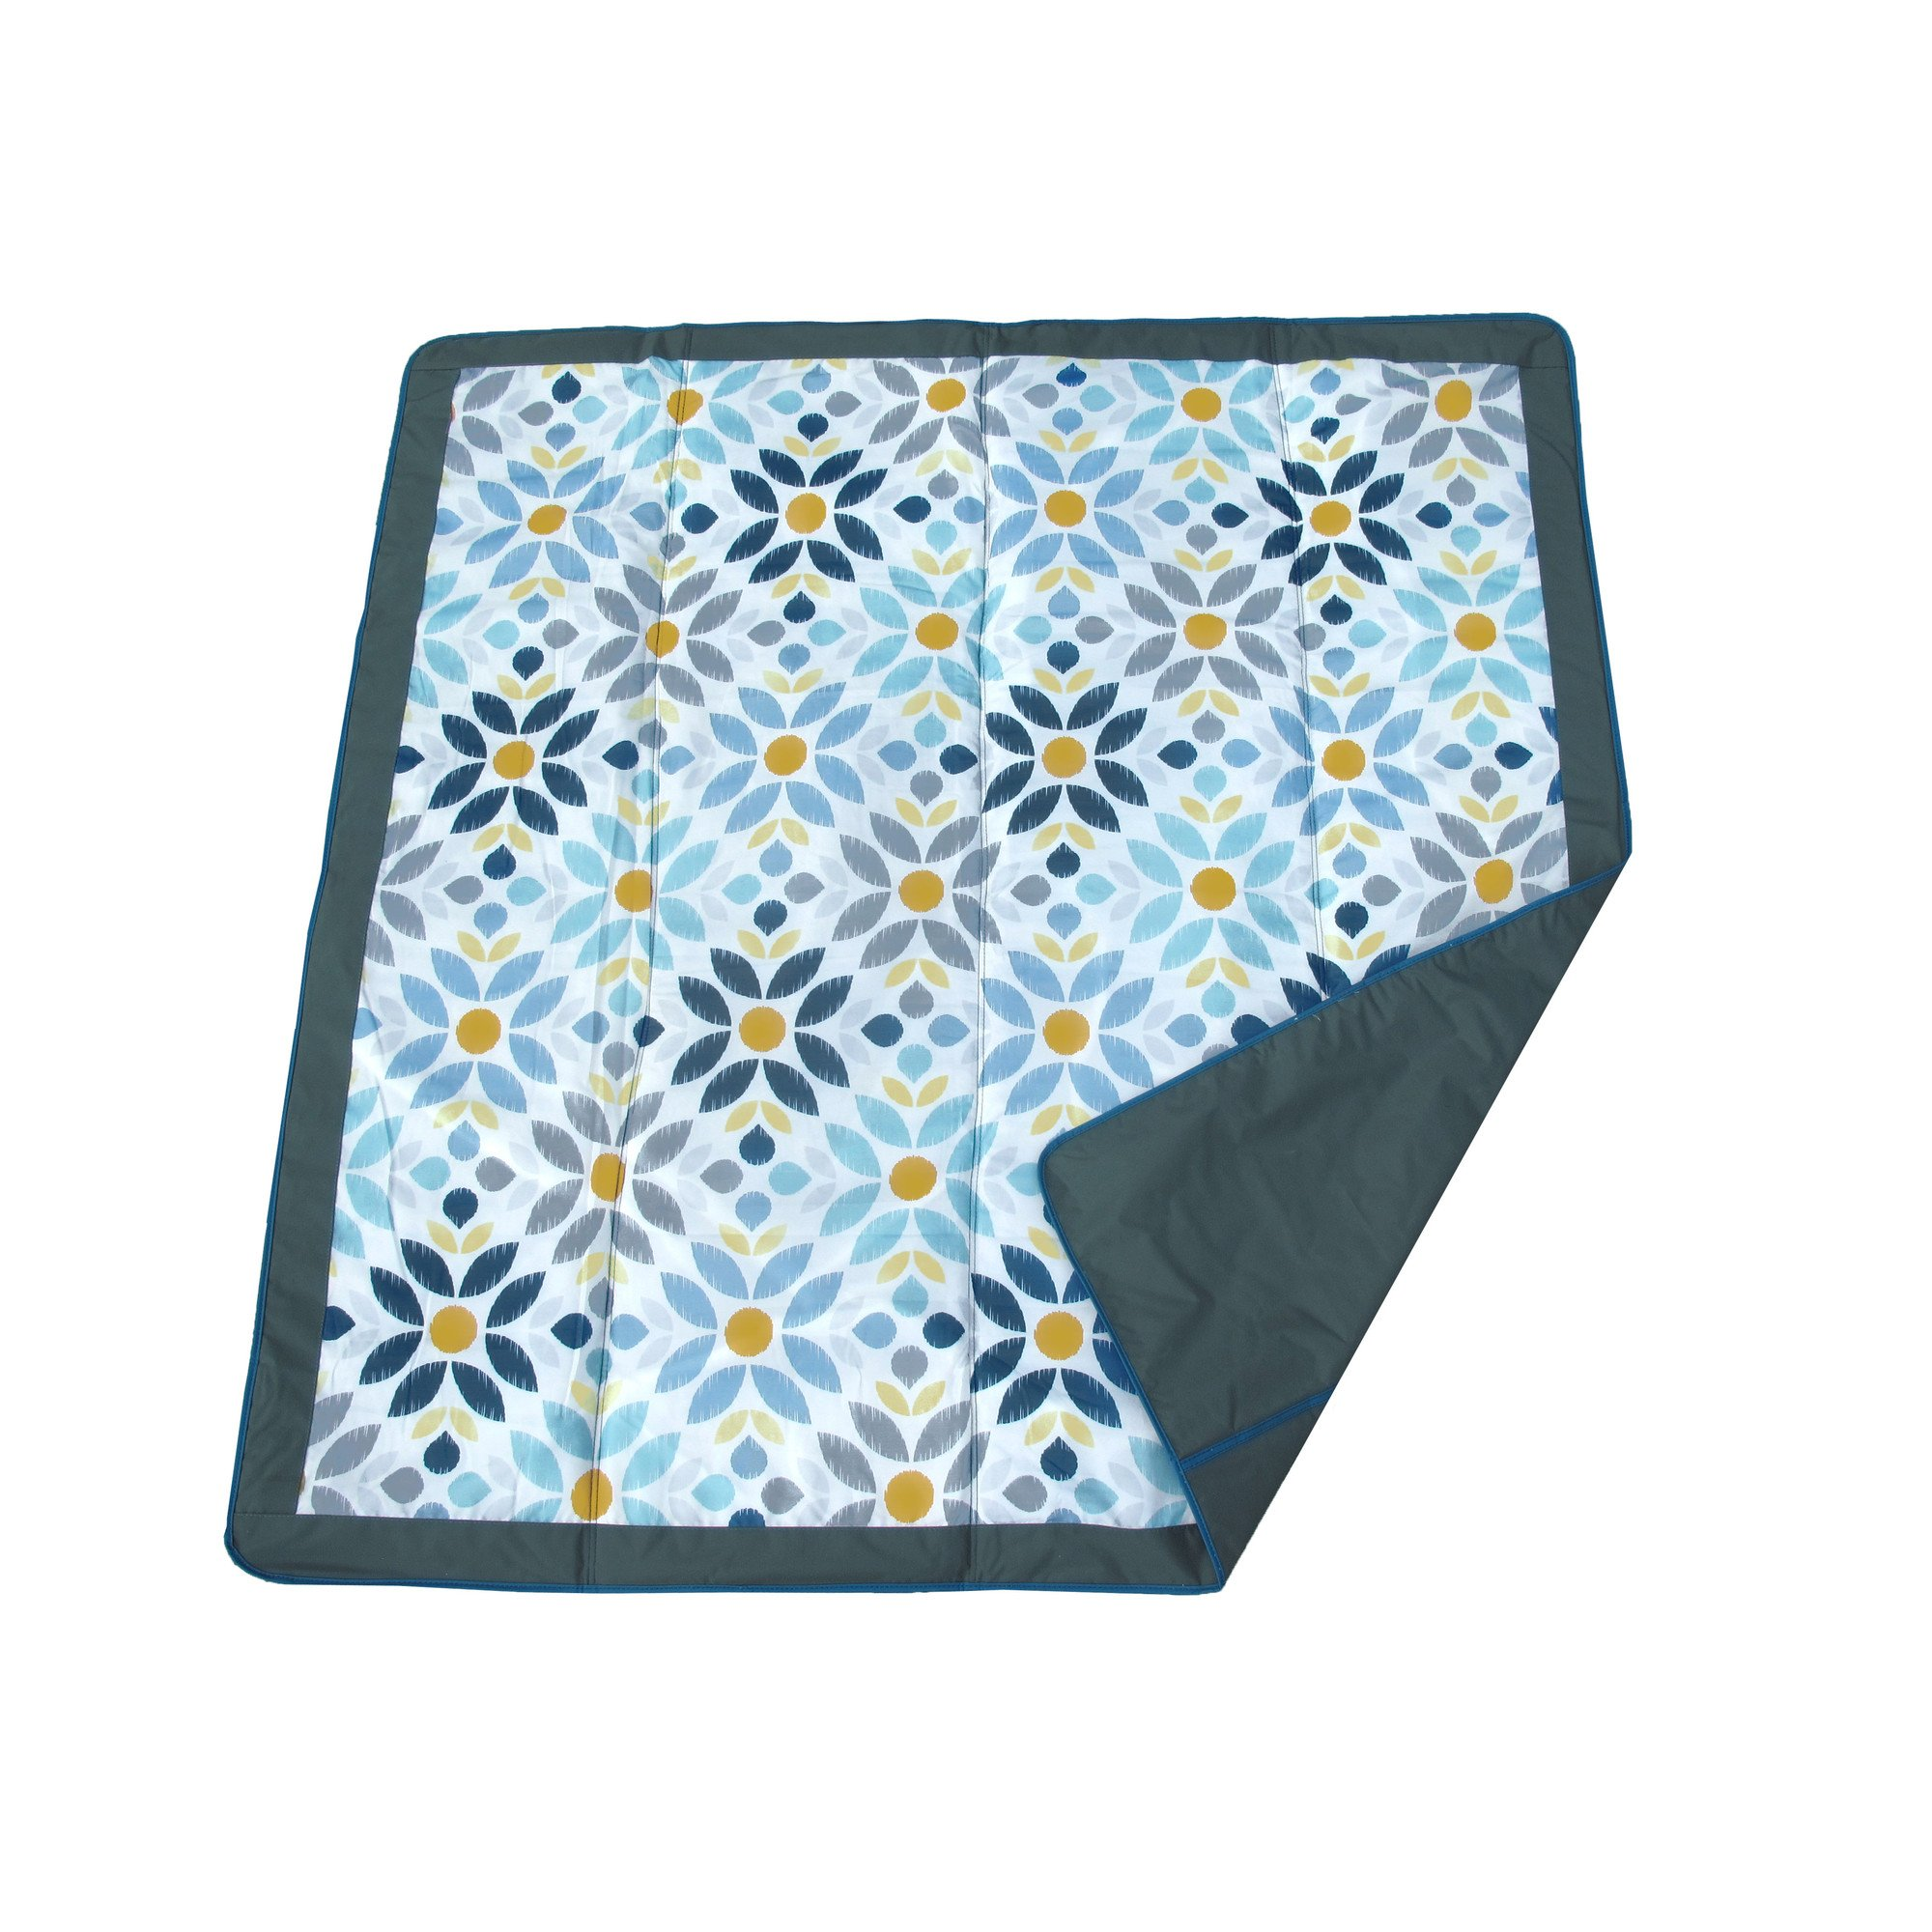 Jj Cole Outdoor Blanket, 5'X'5 Blossom